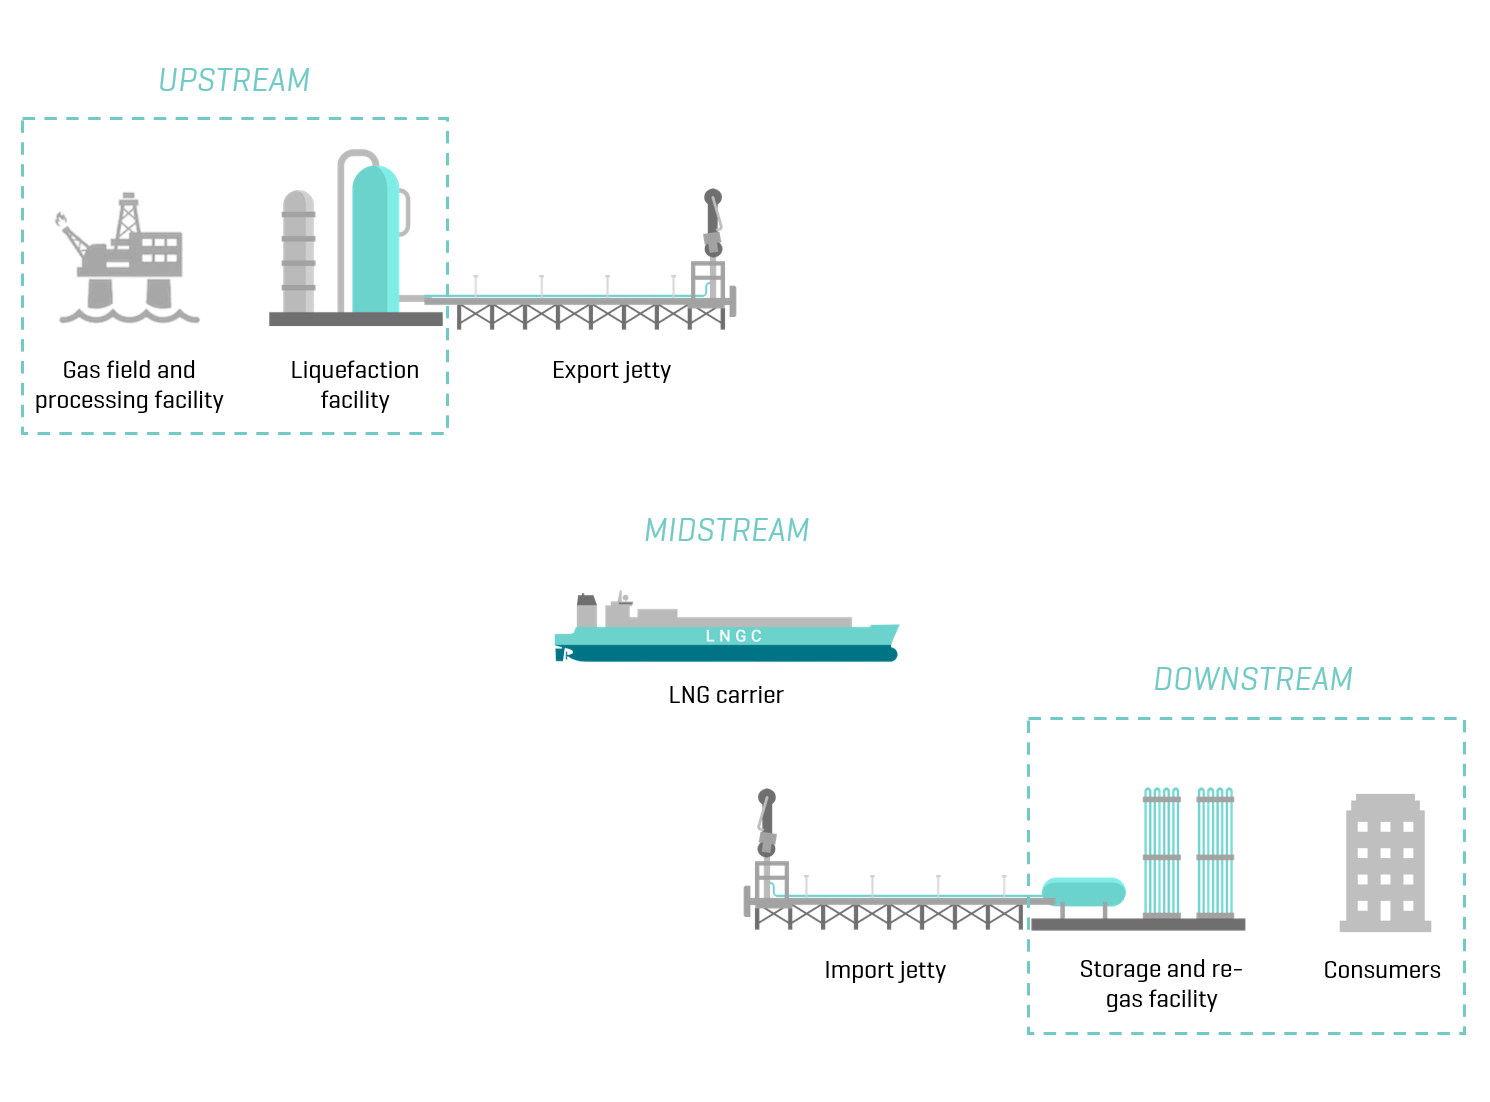 Traditional LNG value chain